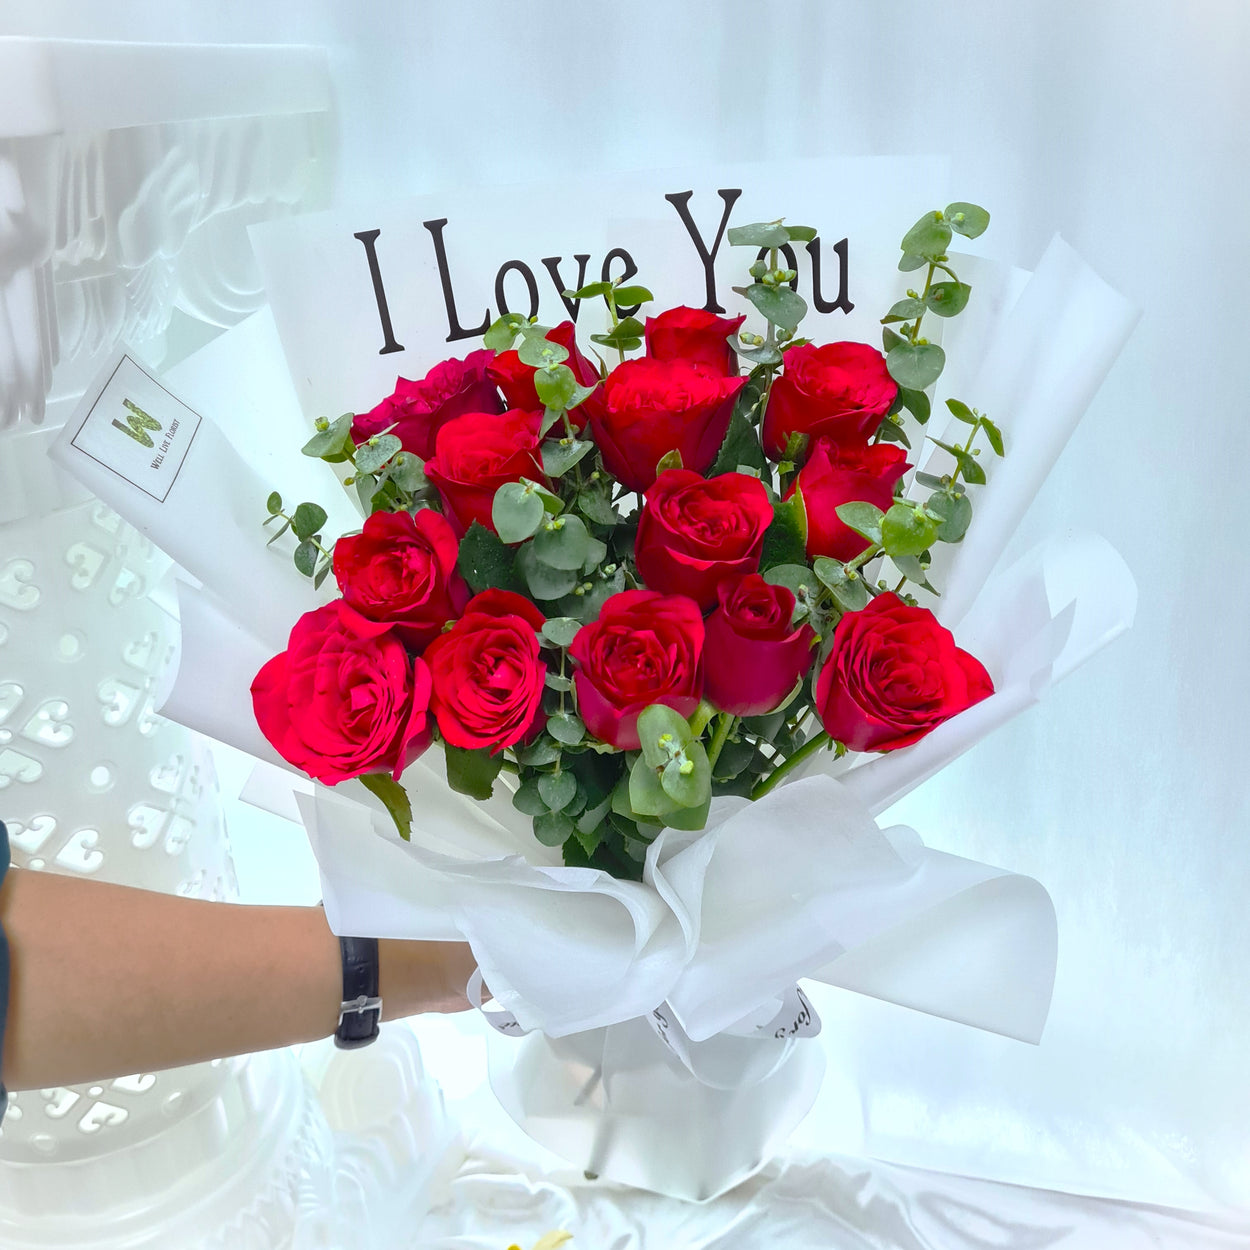 Best Affordable Flower Hand Bouquets in Singapore